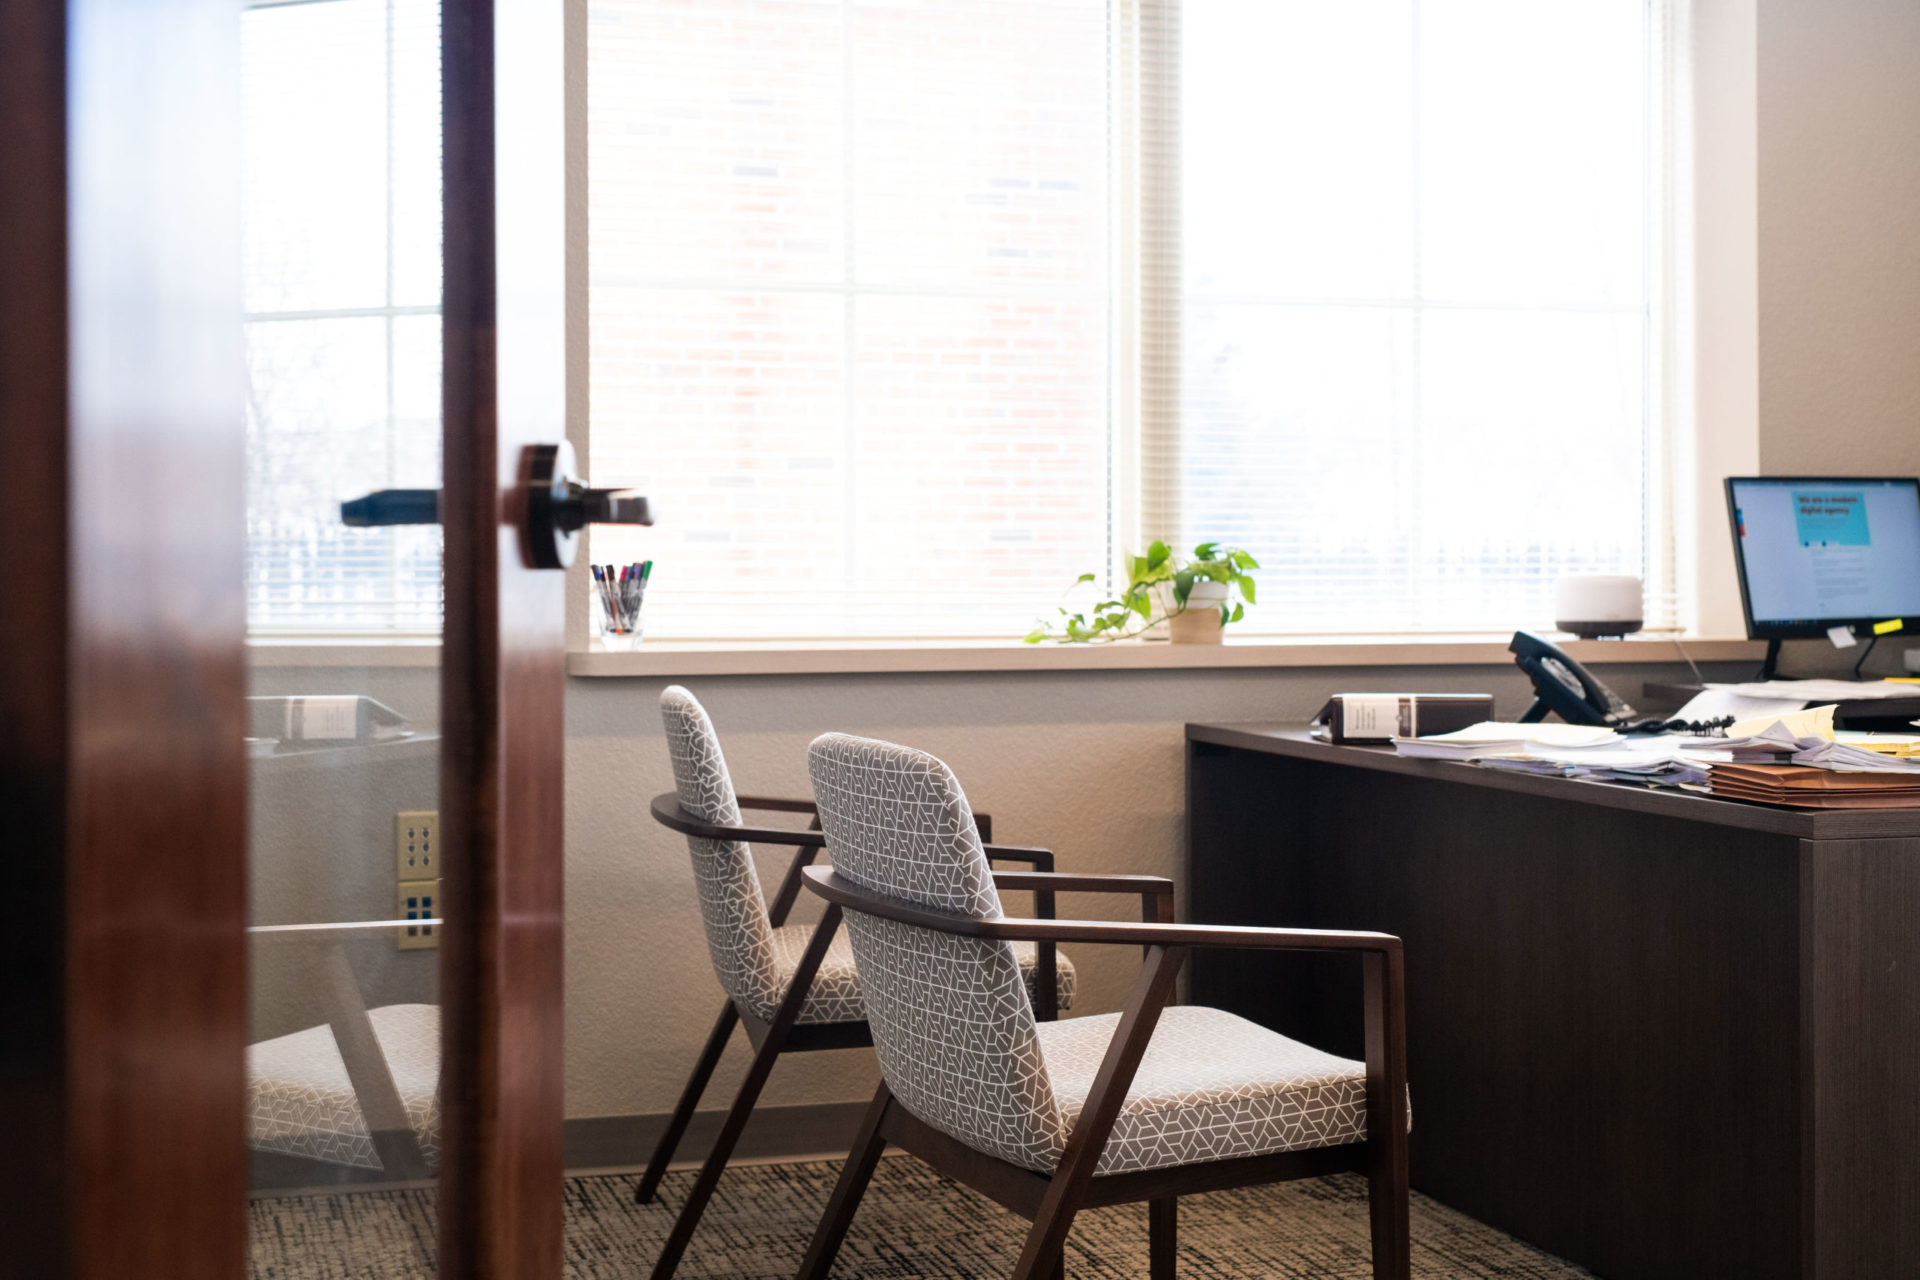 Office environment interior designer, Milwaukee WI | TRP Design Group, LLC